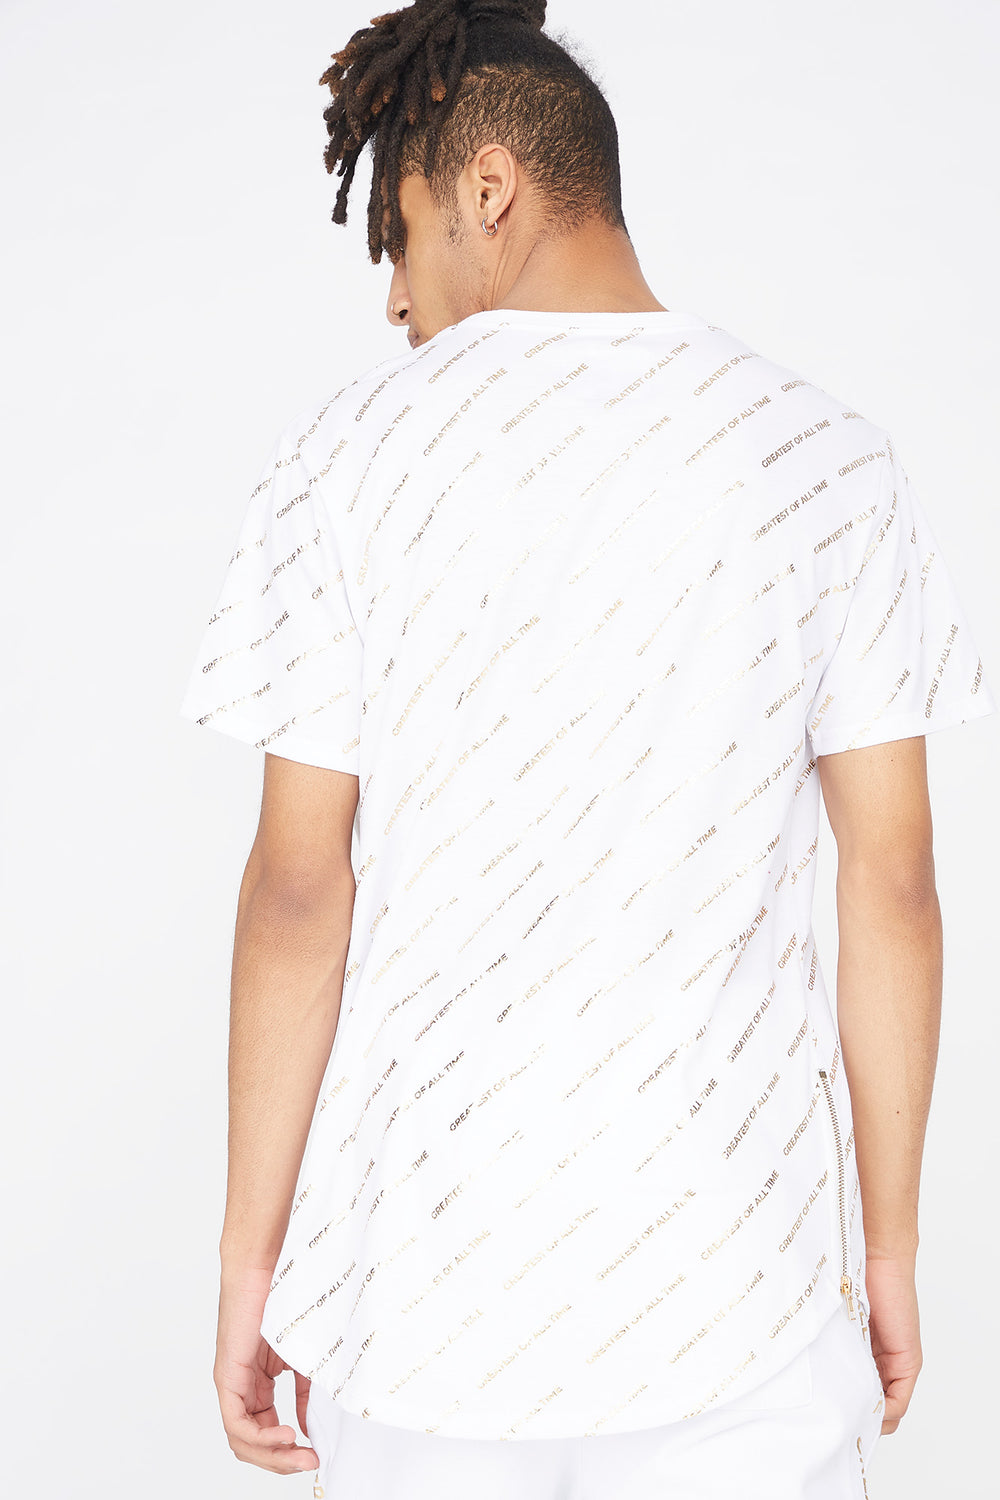 Greatest Of All Time Graphic Longline T-Shirt White